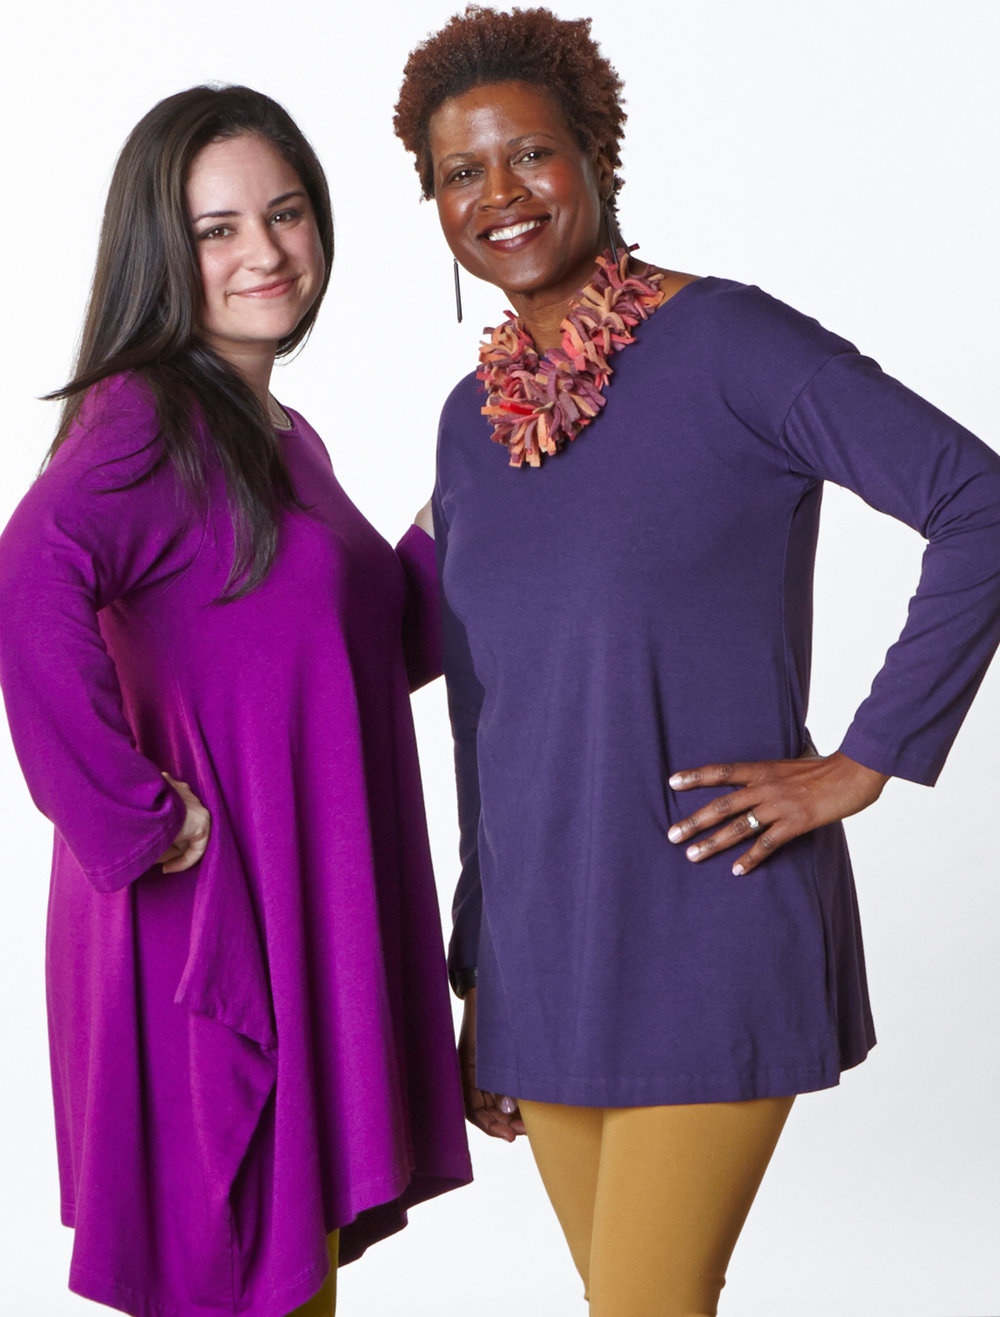 Nahla Tunic in Rhapsody Bamboo French Terry, Daisy Tunic in Polaris Bamboo Cotton